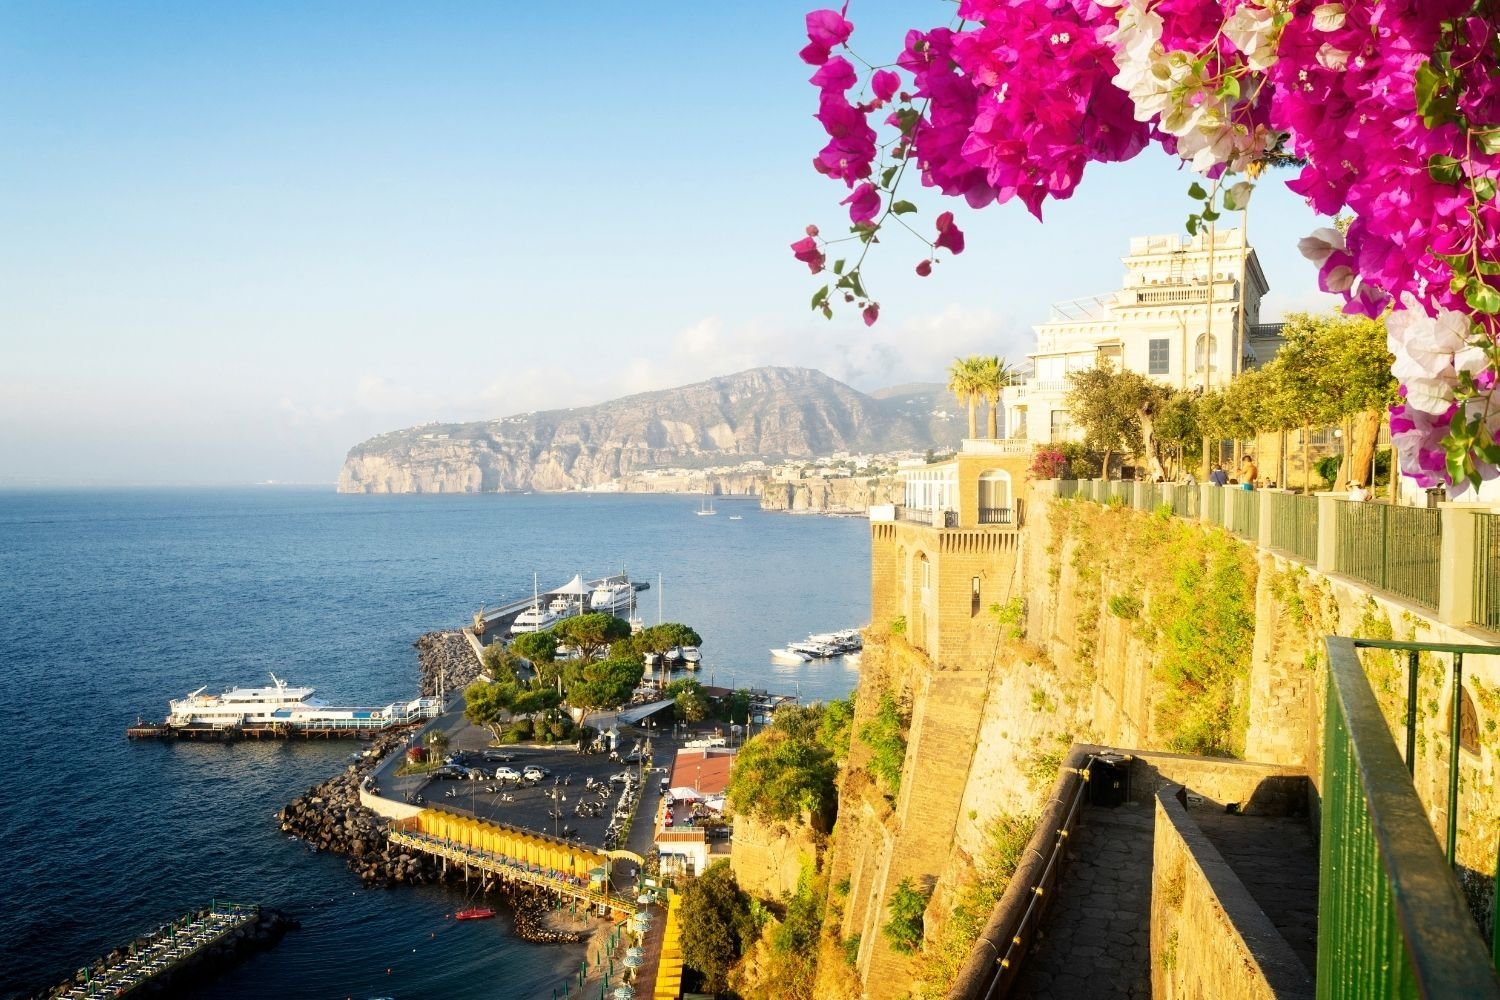 Sunset in Sorrento - Things To Do in Sorrento